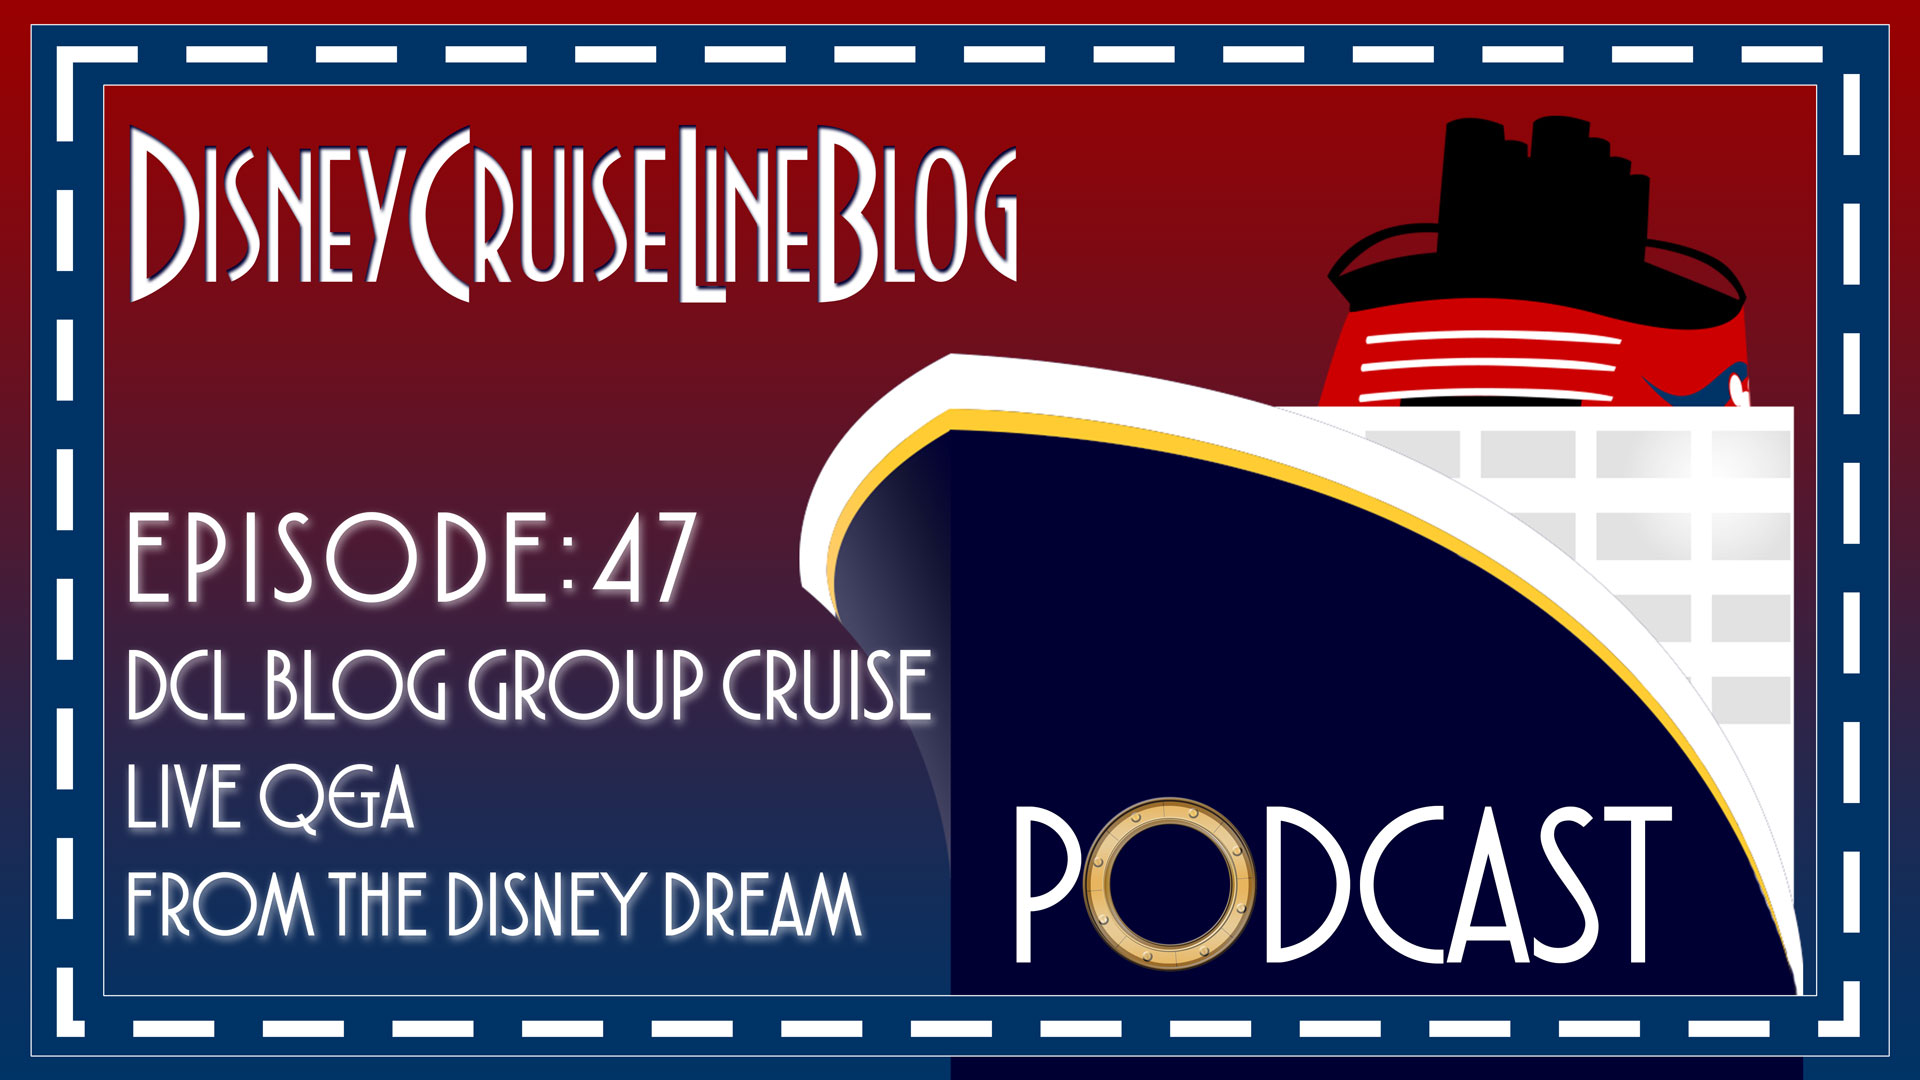 DCL Blog Podcast Episode 47 DCL Blog Group Cruise QA